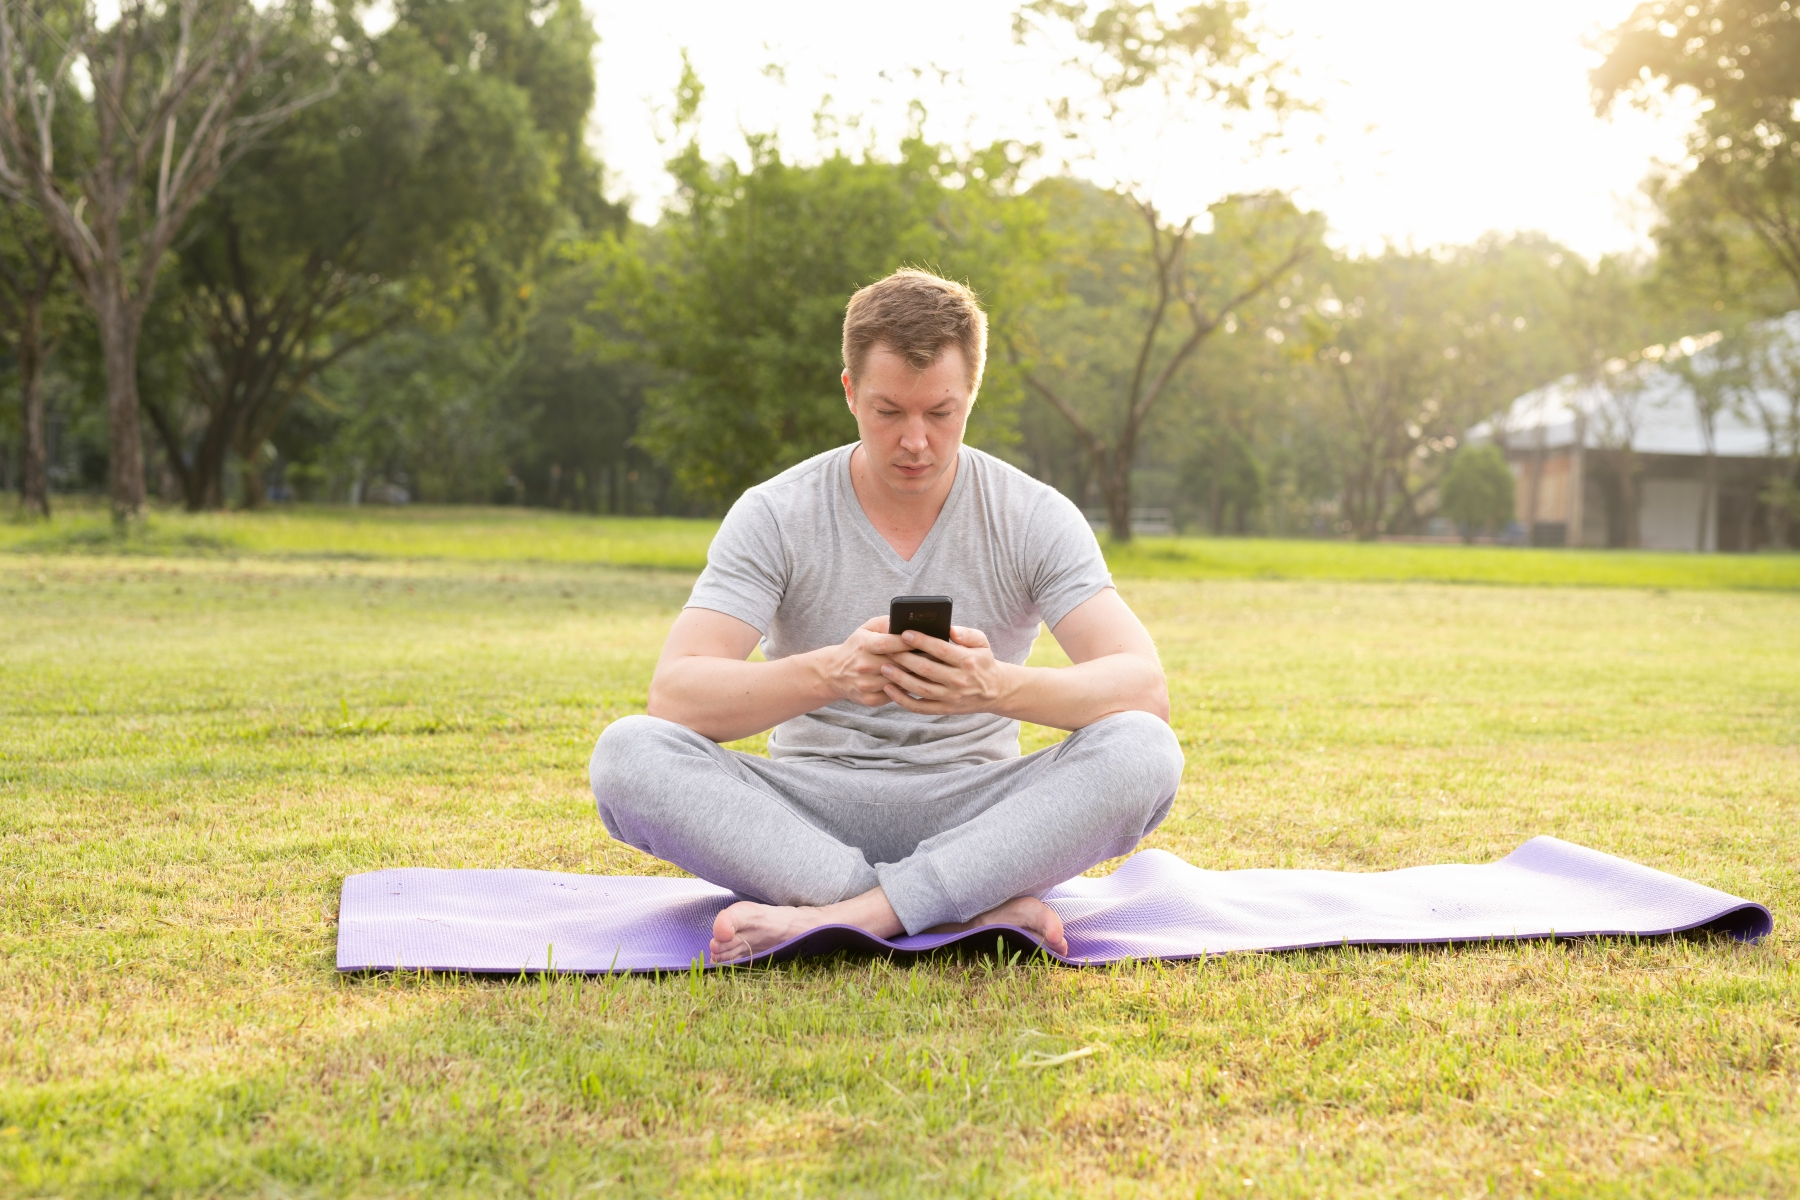 yoga dating spirituality app